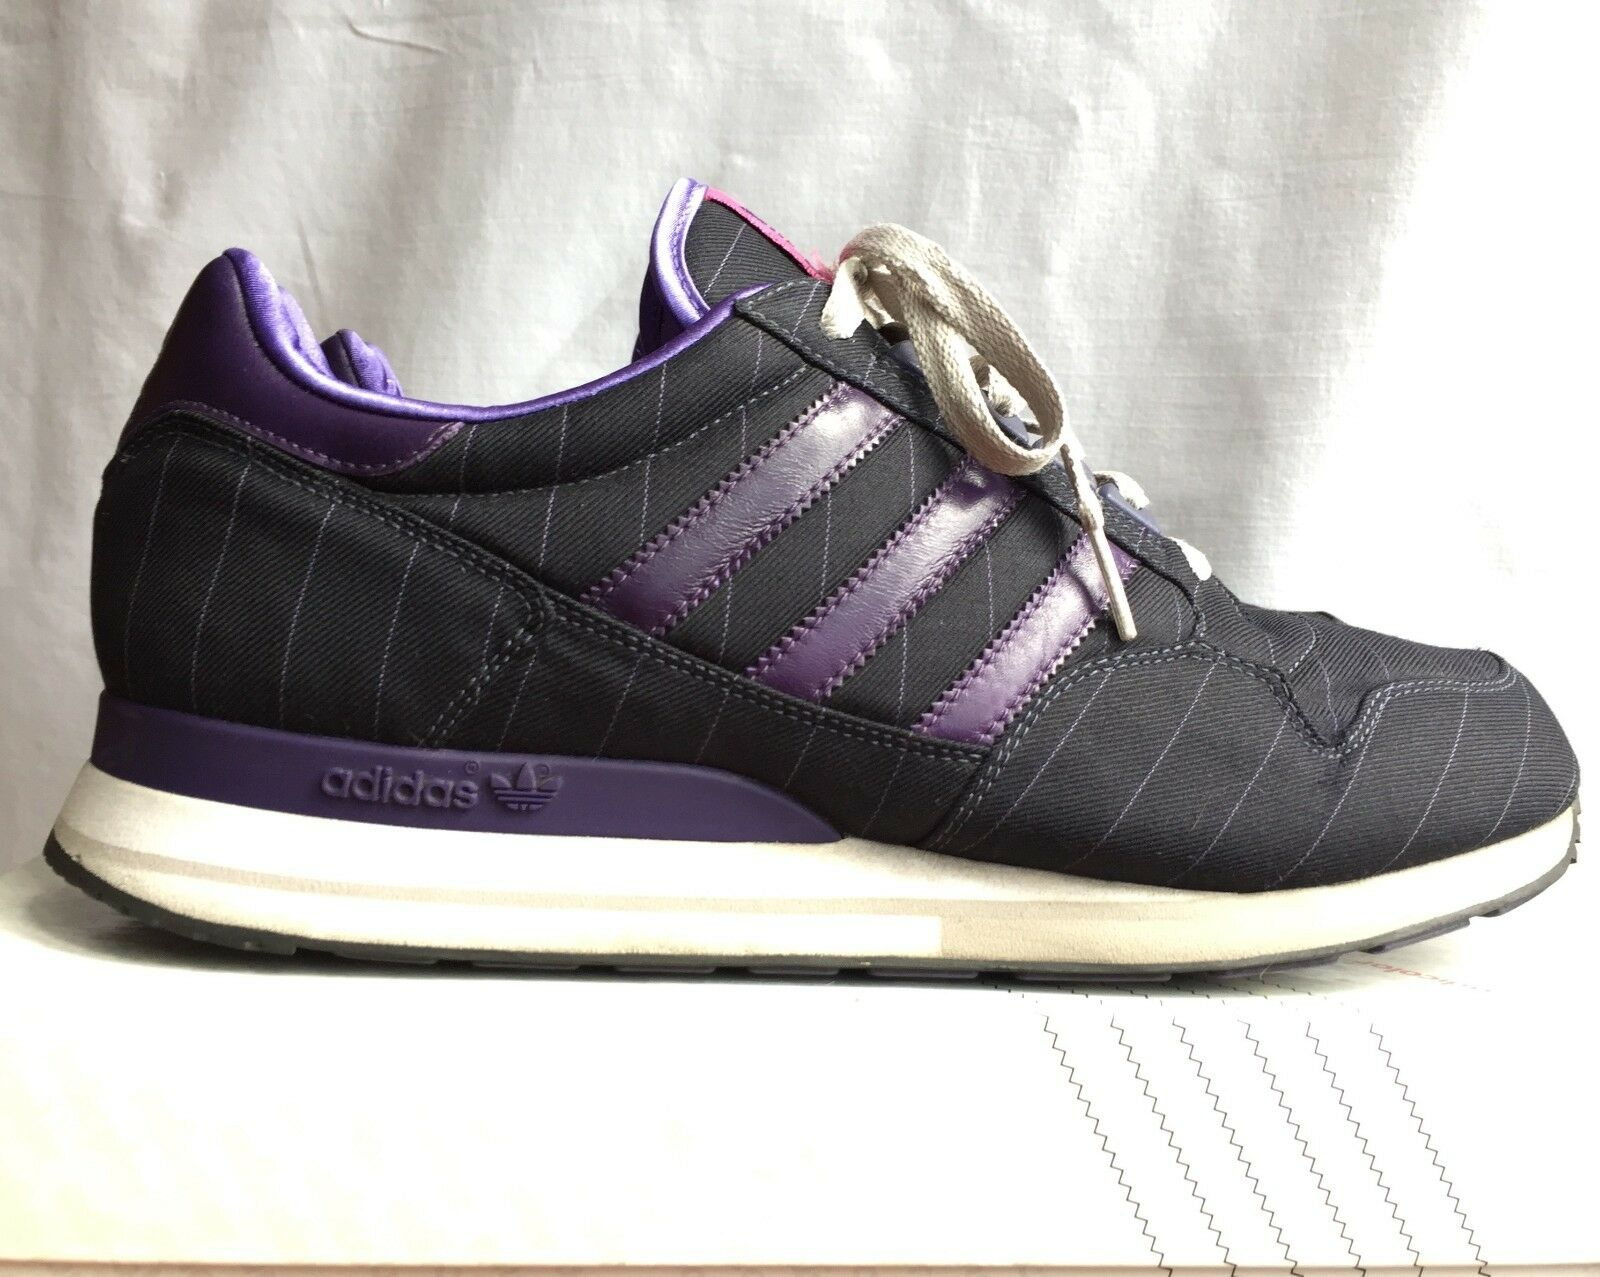 2007 Rare ADIDAS ZX500 Materials of The World - England SIZE 10.5US 10UK